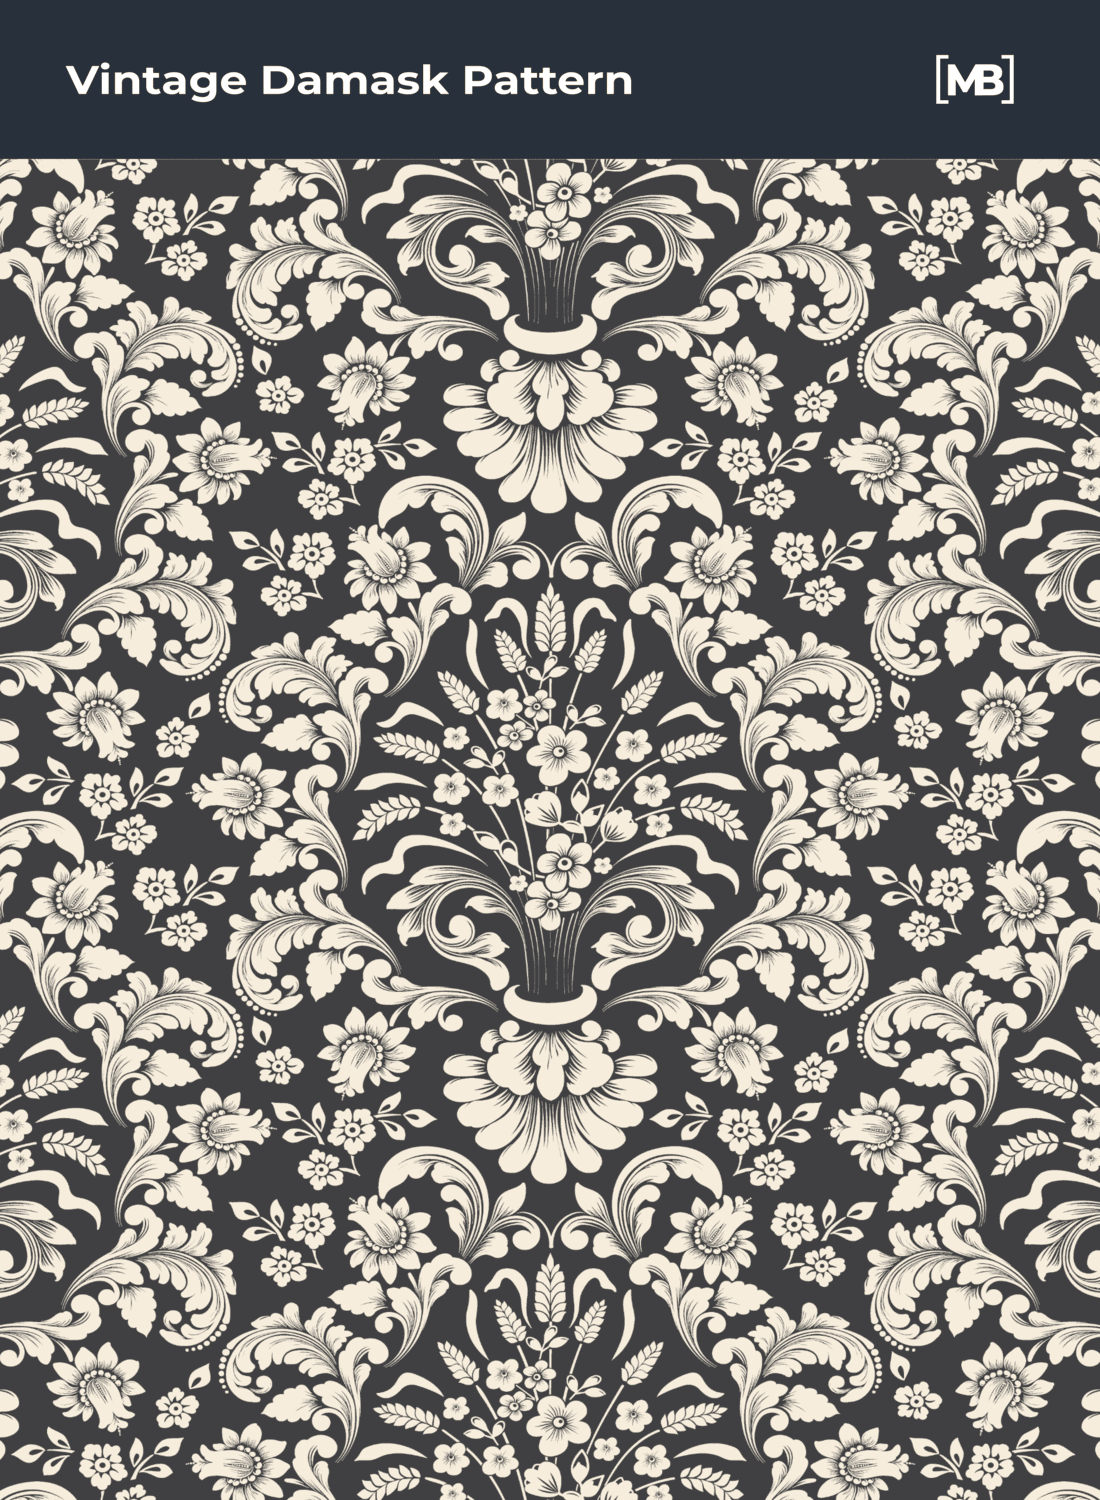 Baroque flowers style with extra details.